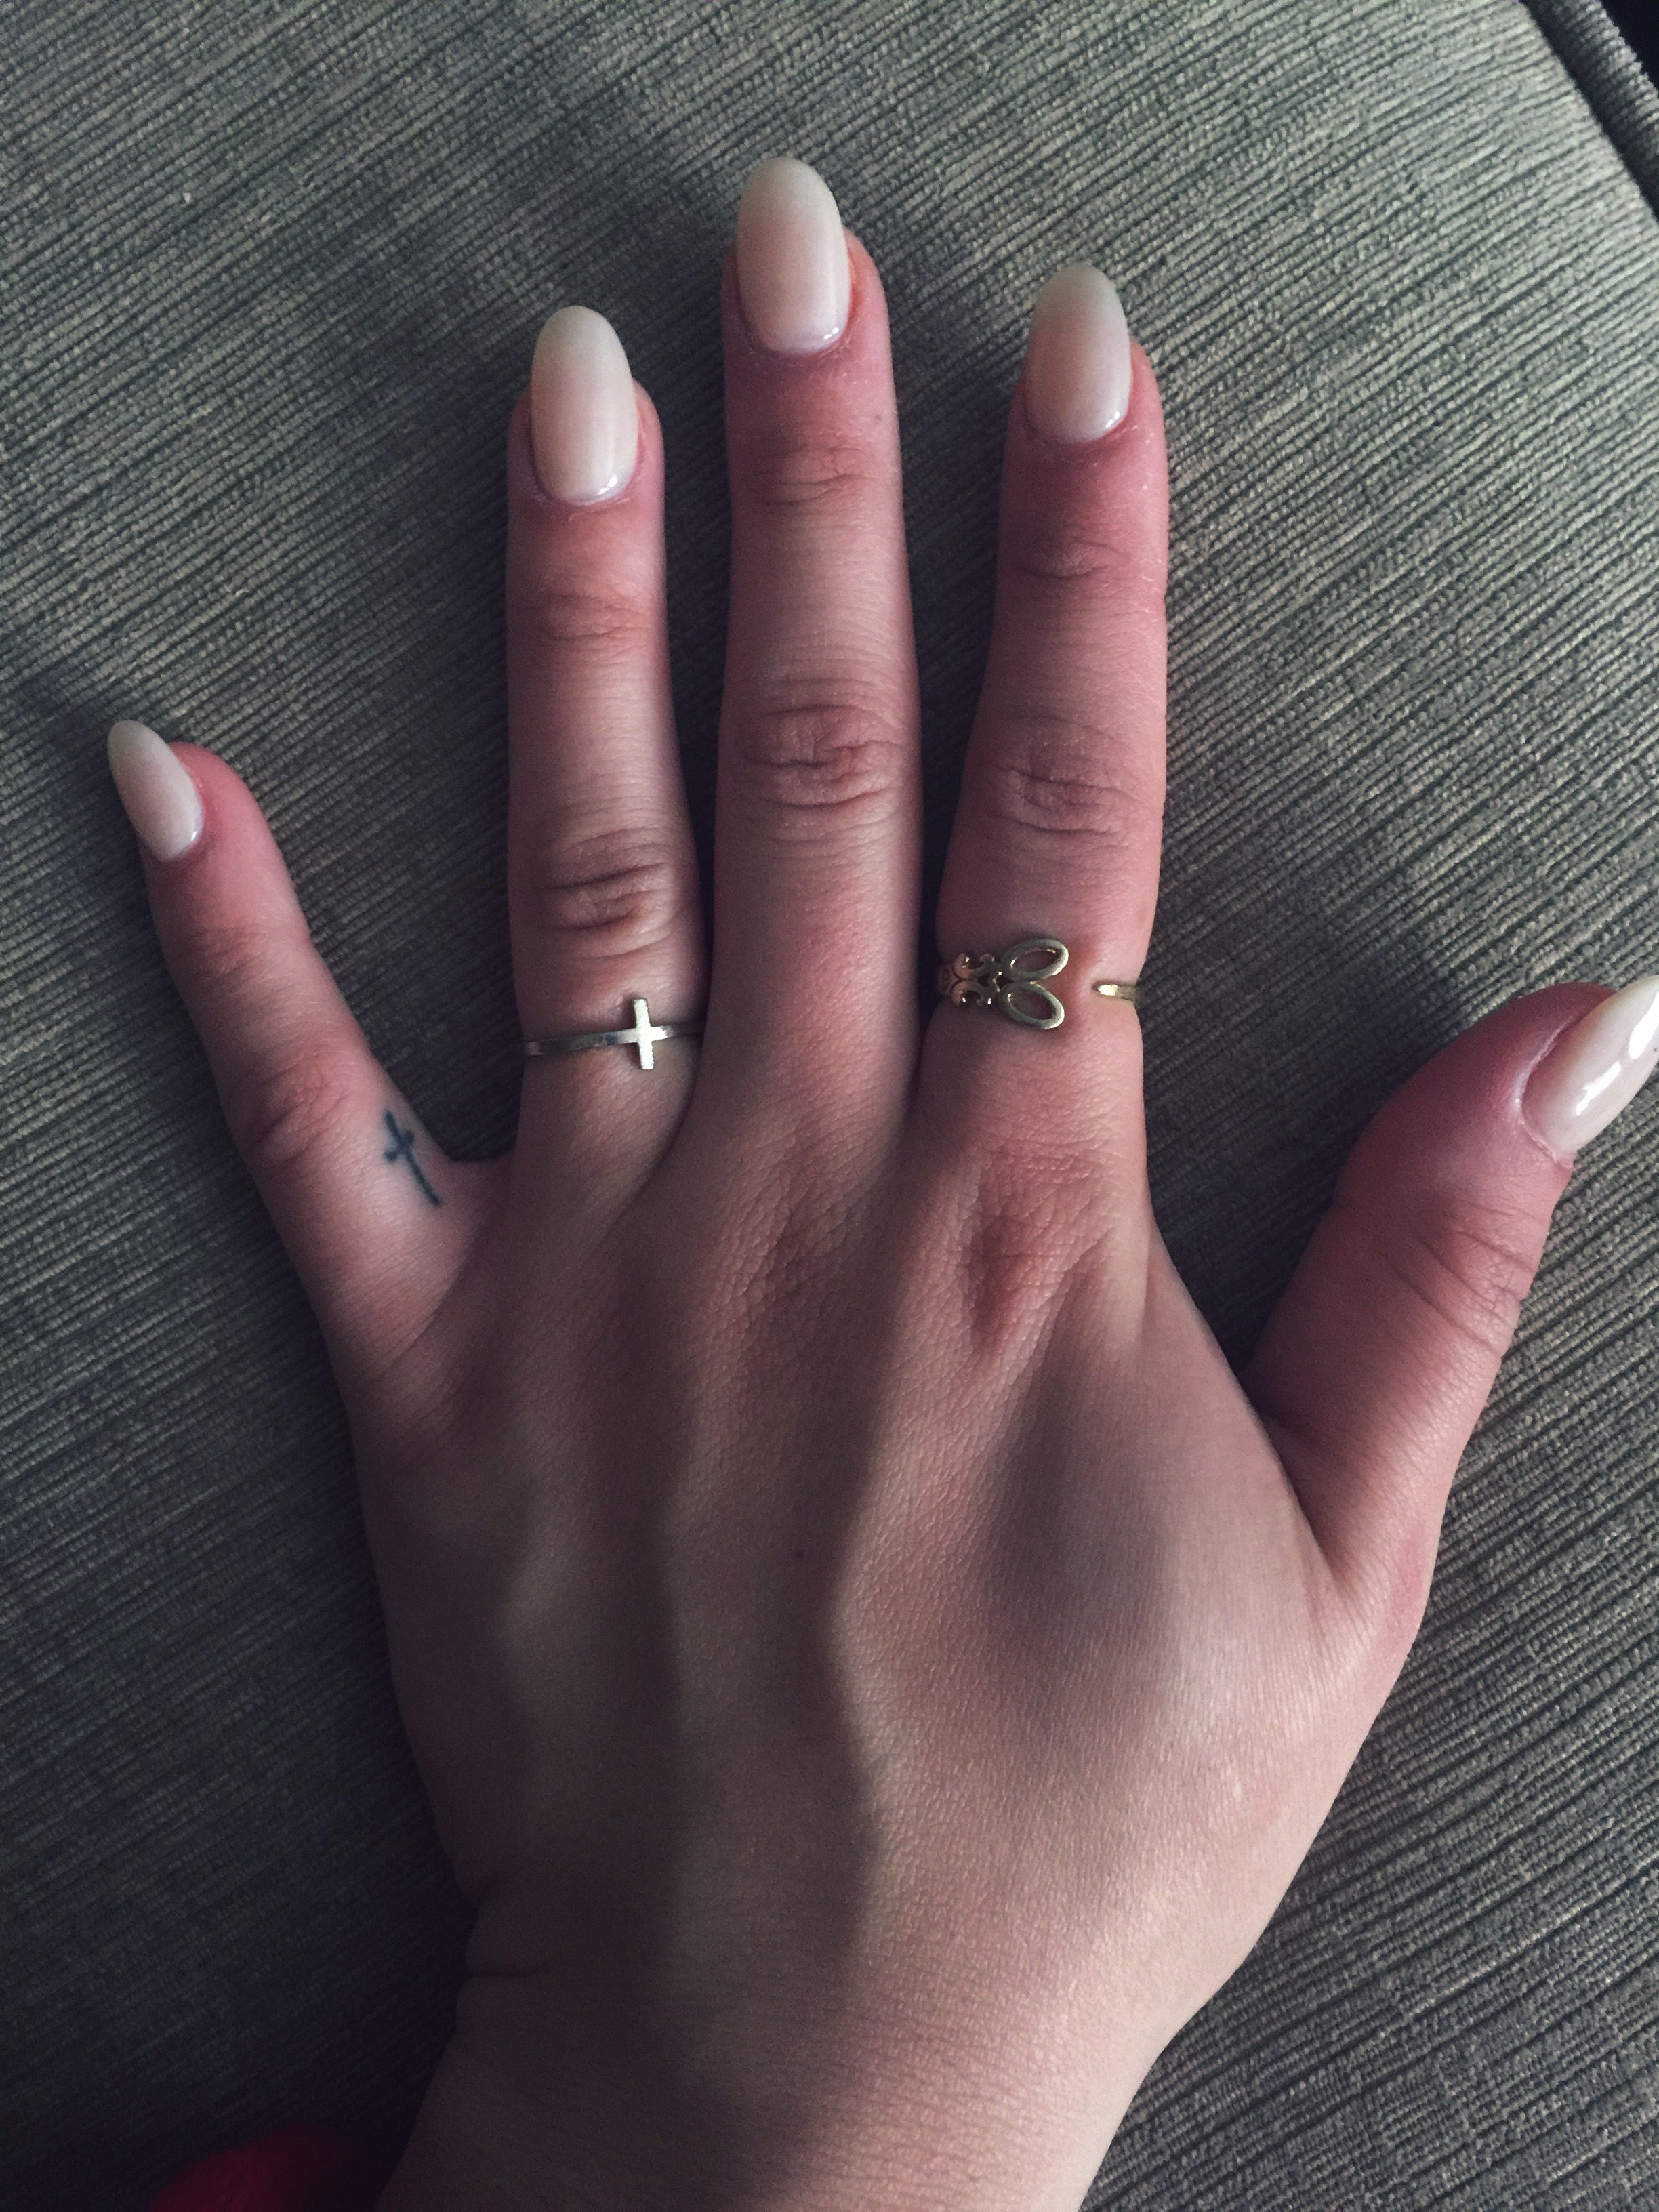 Nude almond shaped nails | Claws | Pinterest | Almond shape nails